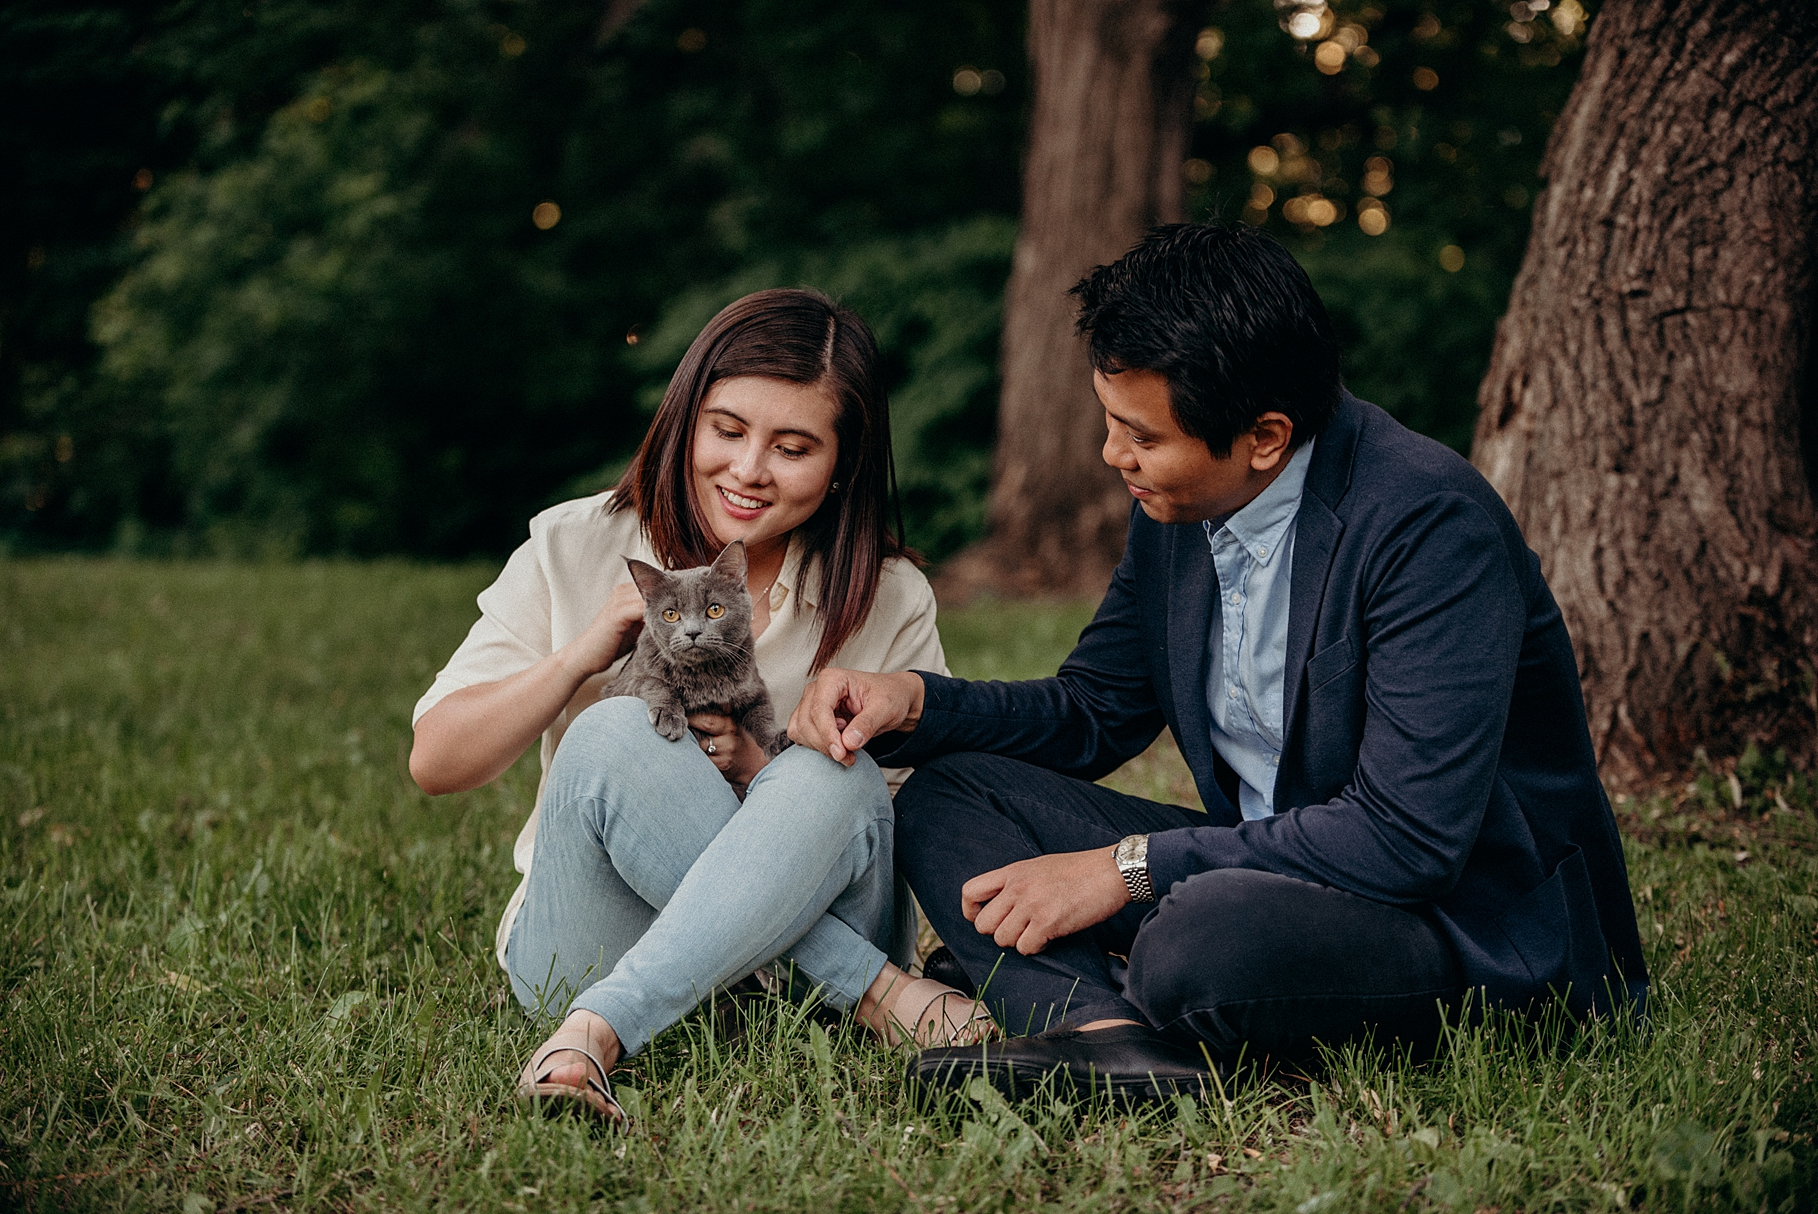 Bringing your Dog or Cat to an engagement session. Mocha Tree Studios Ottawa Toronto Montreal Wedding and Engagement Photographer and Videographer Dark Moody Intimate Authentic Modern Romantic Cinematic Best Candid 5